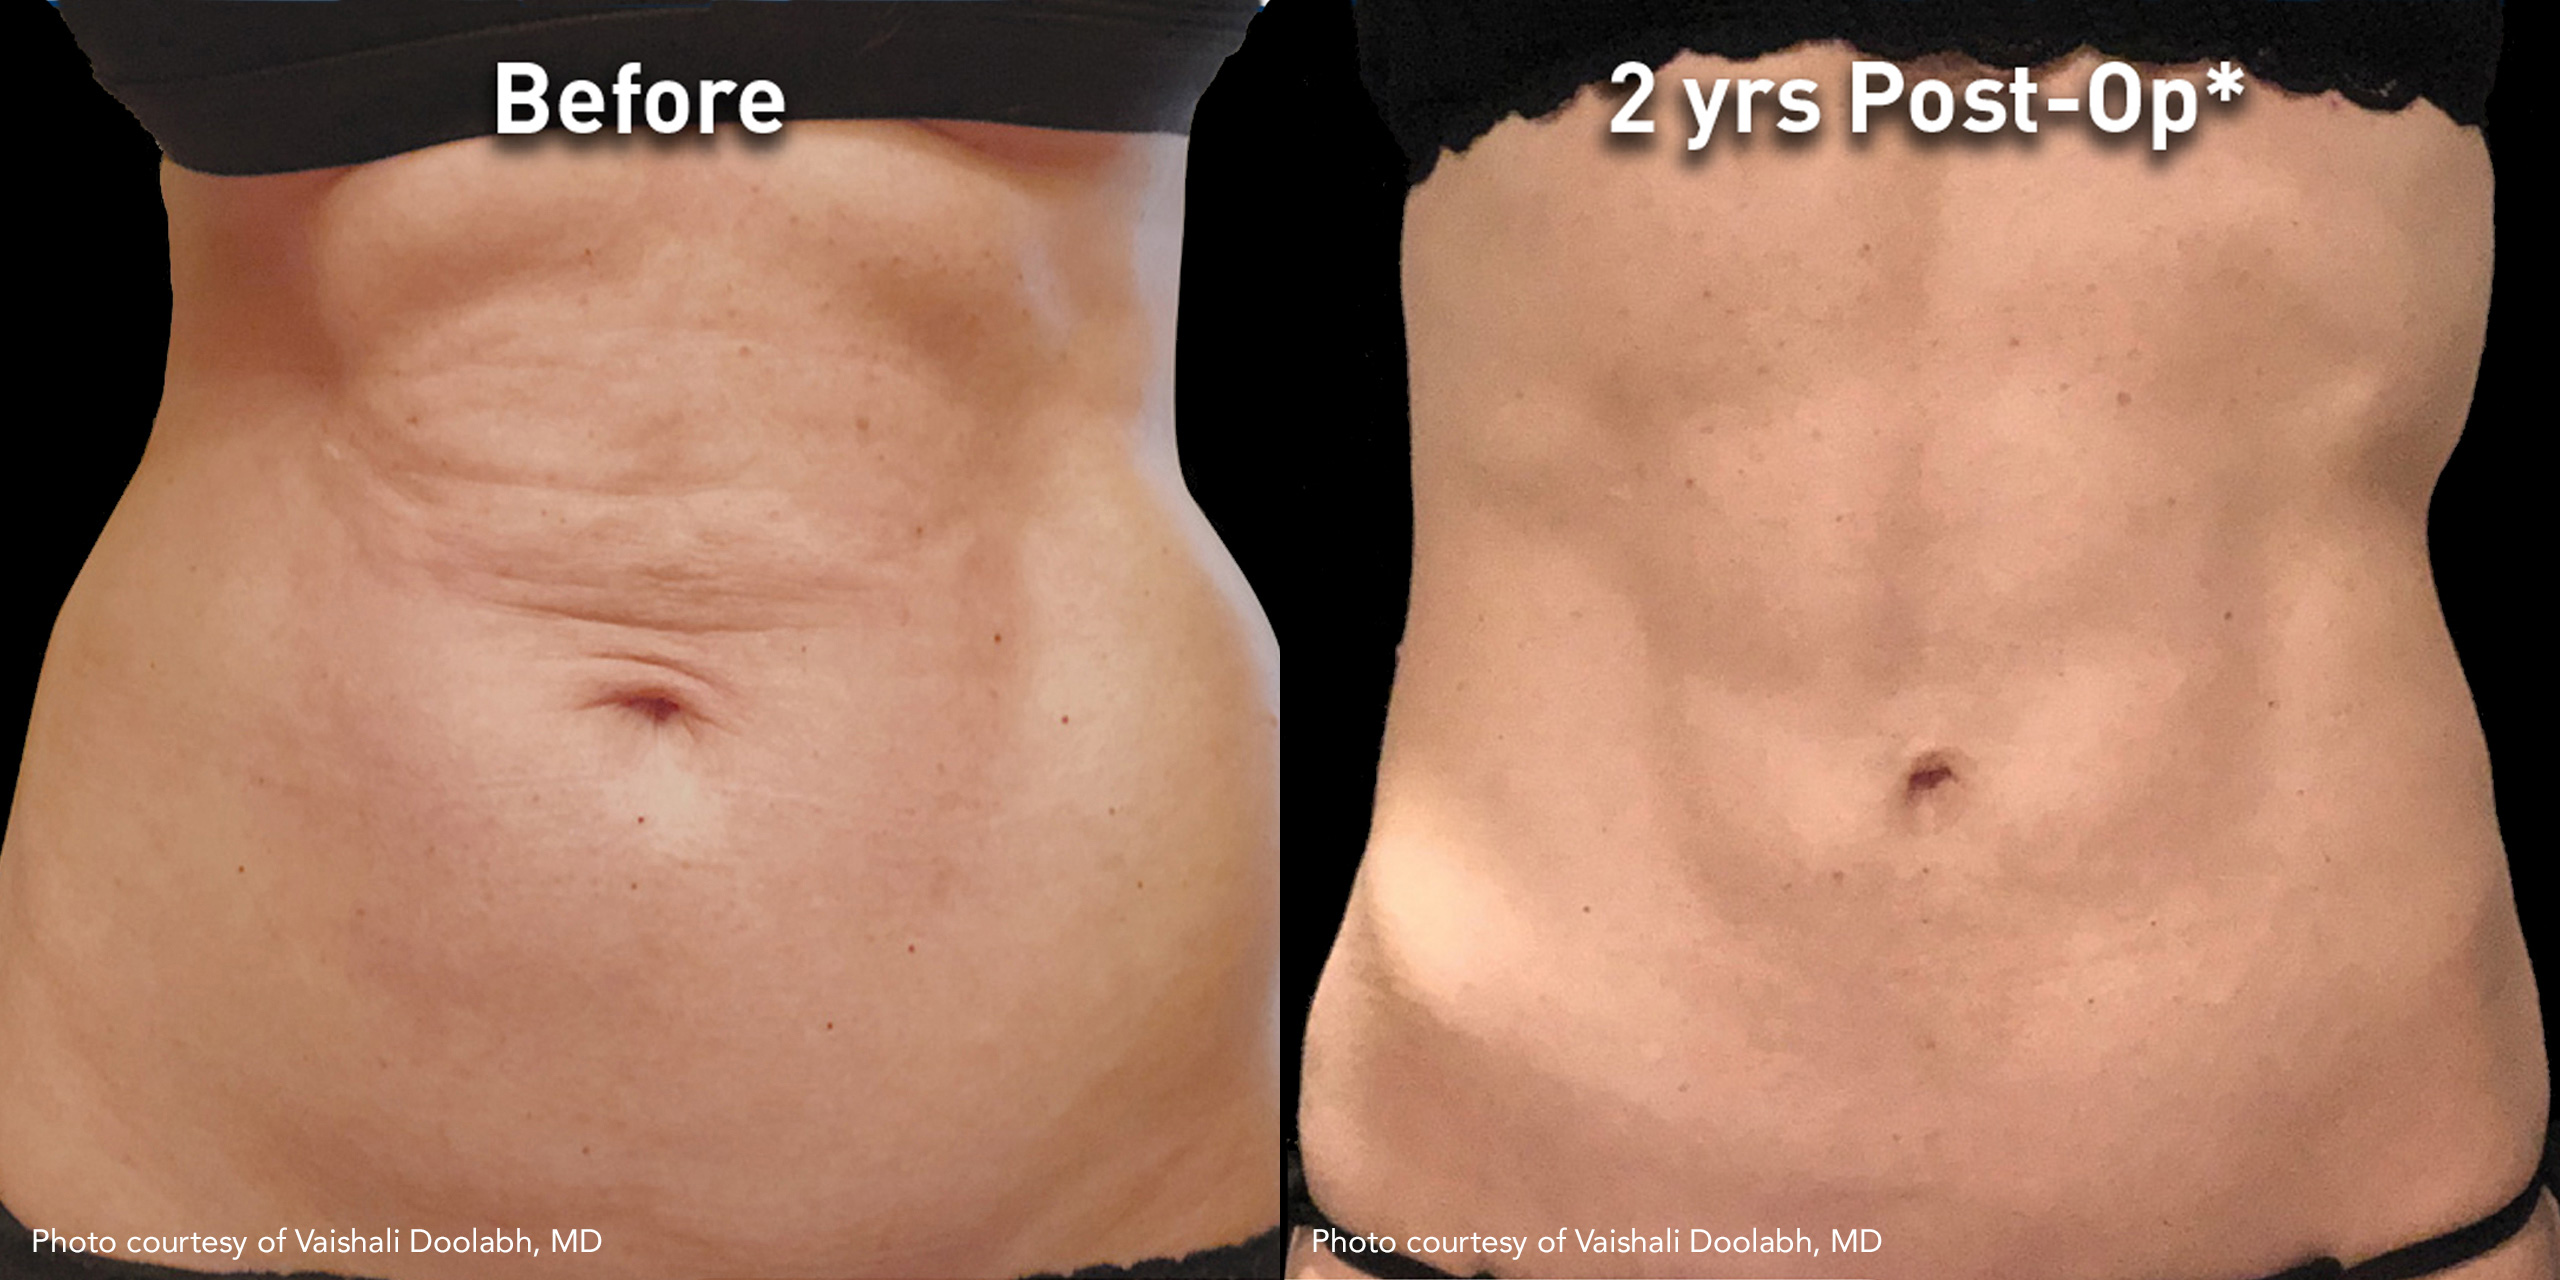 Subdermal Skin Tightening Using JPlasma